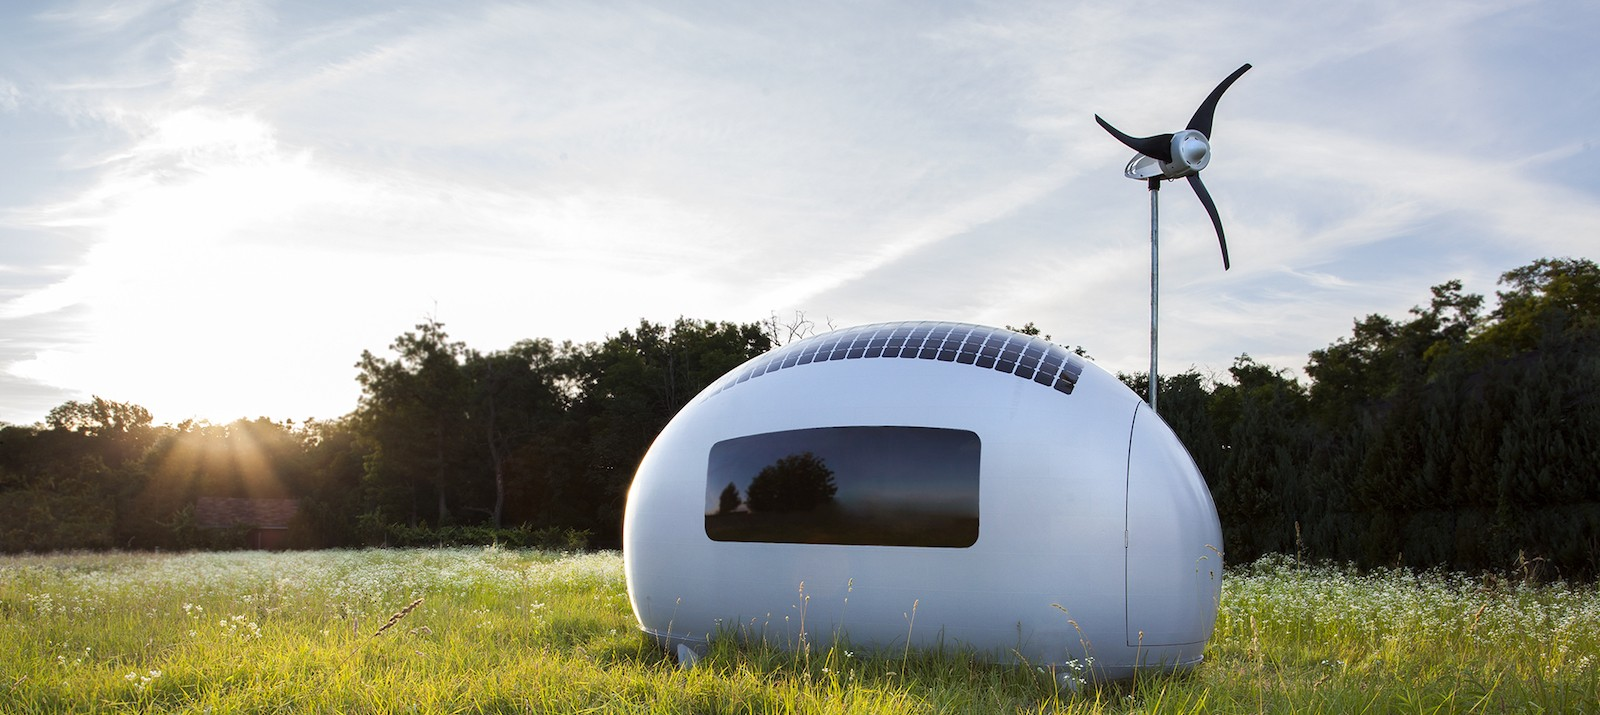 The Ecocapsule, a self-sufficient pod/tiny house on wheels that's available for pre-order, is outside in the grass during the daytime.